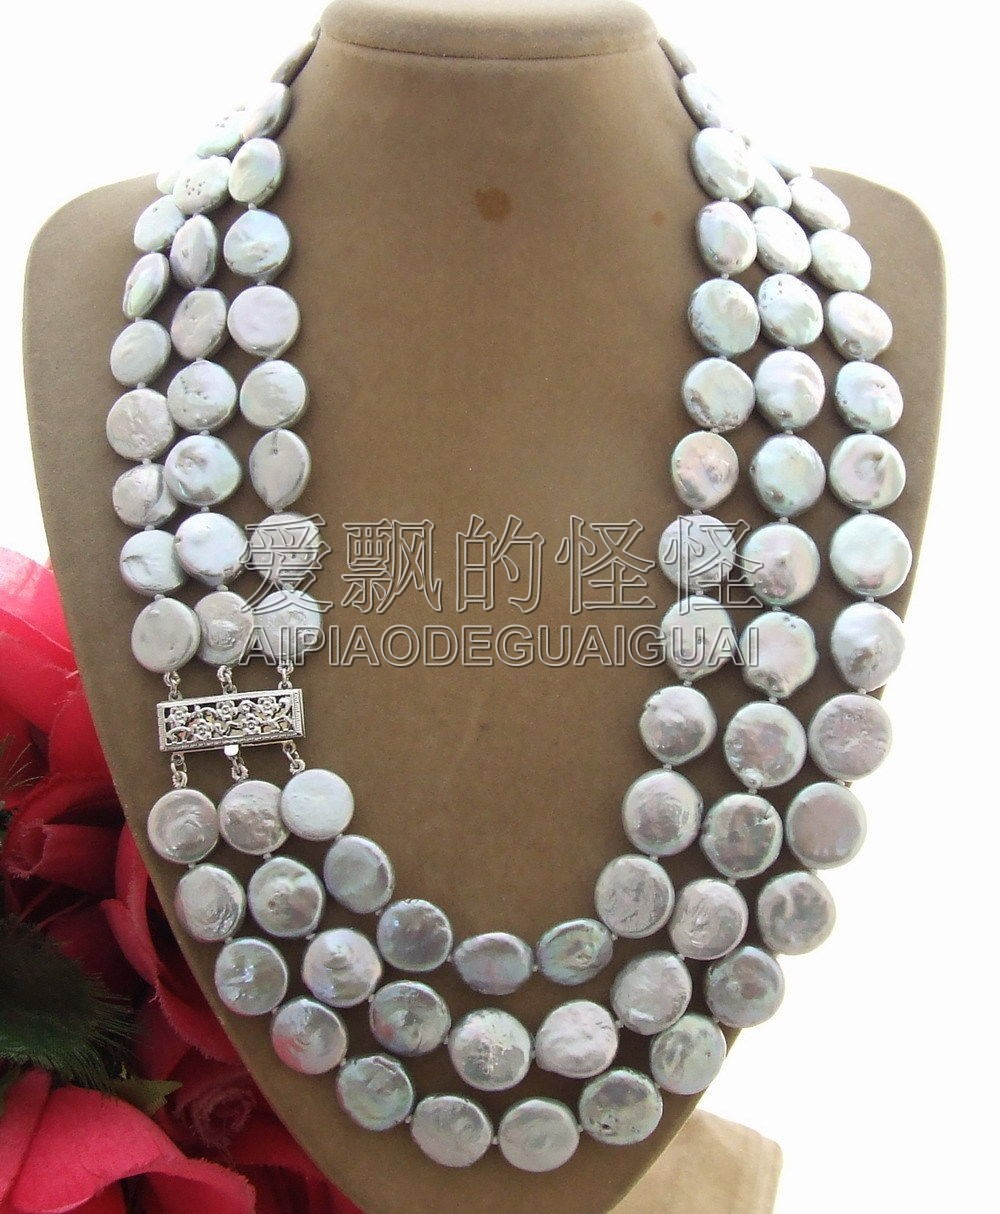 N011609 14MM 3Strands Gray Coin Pearl Necklace